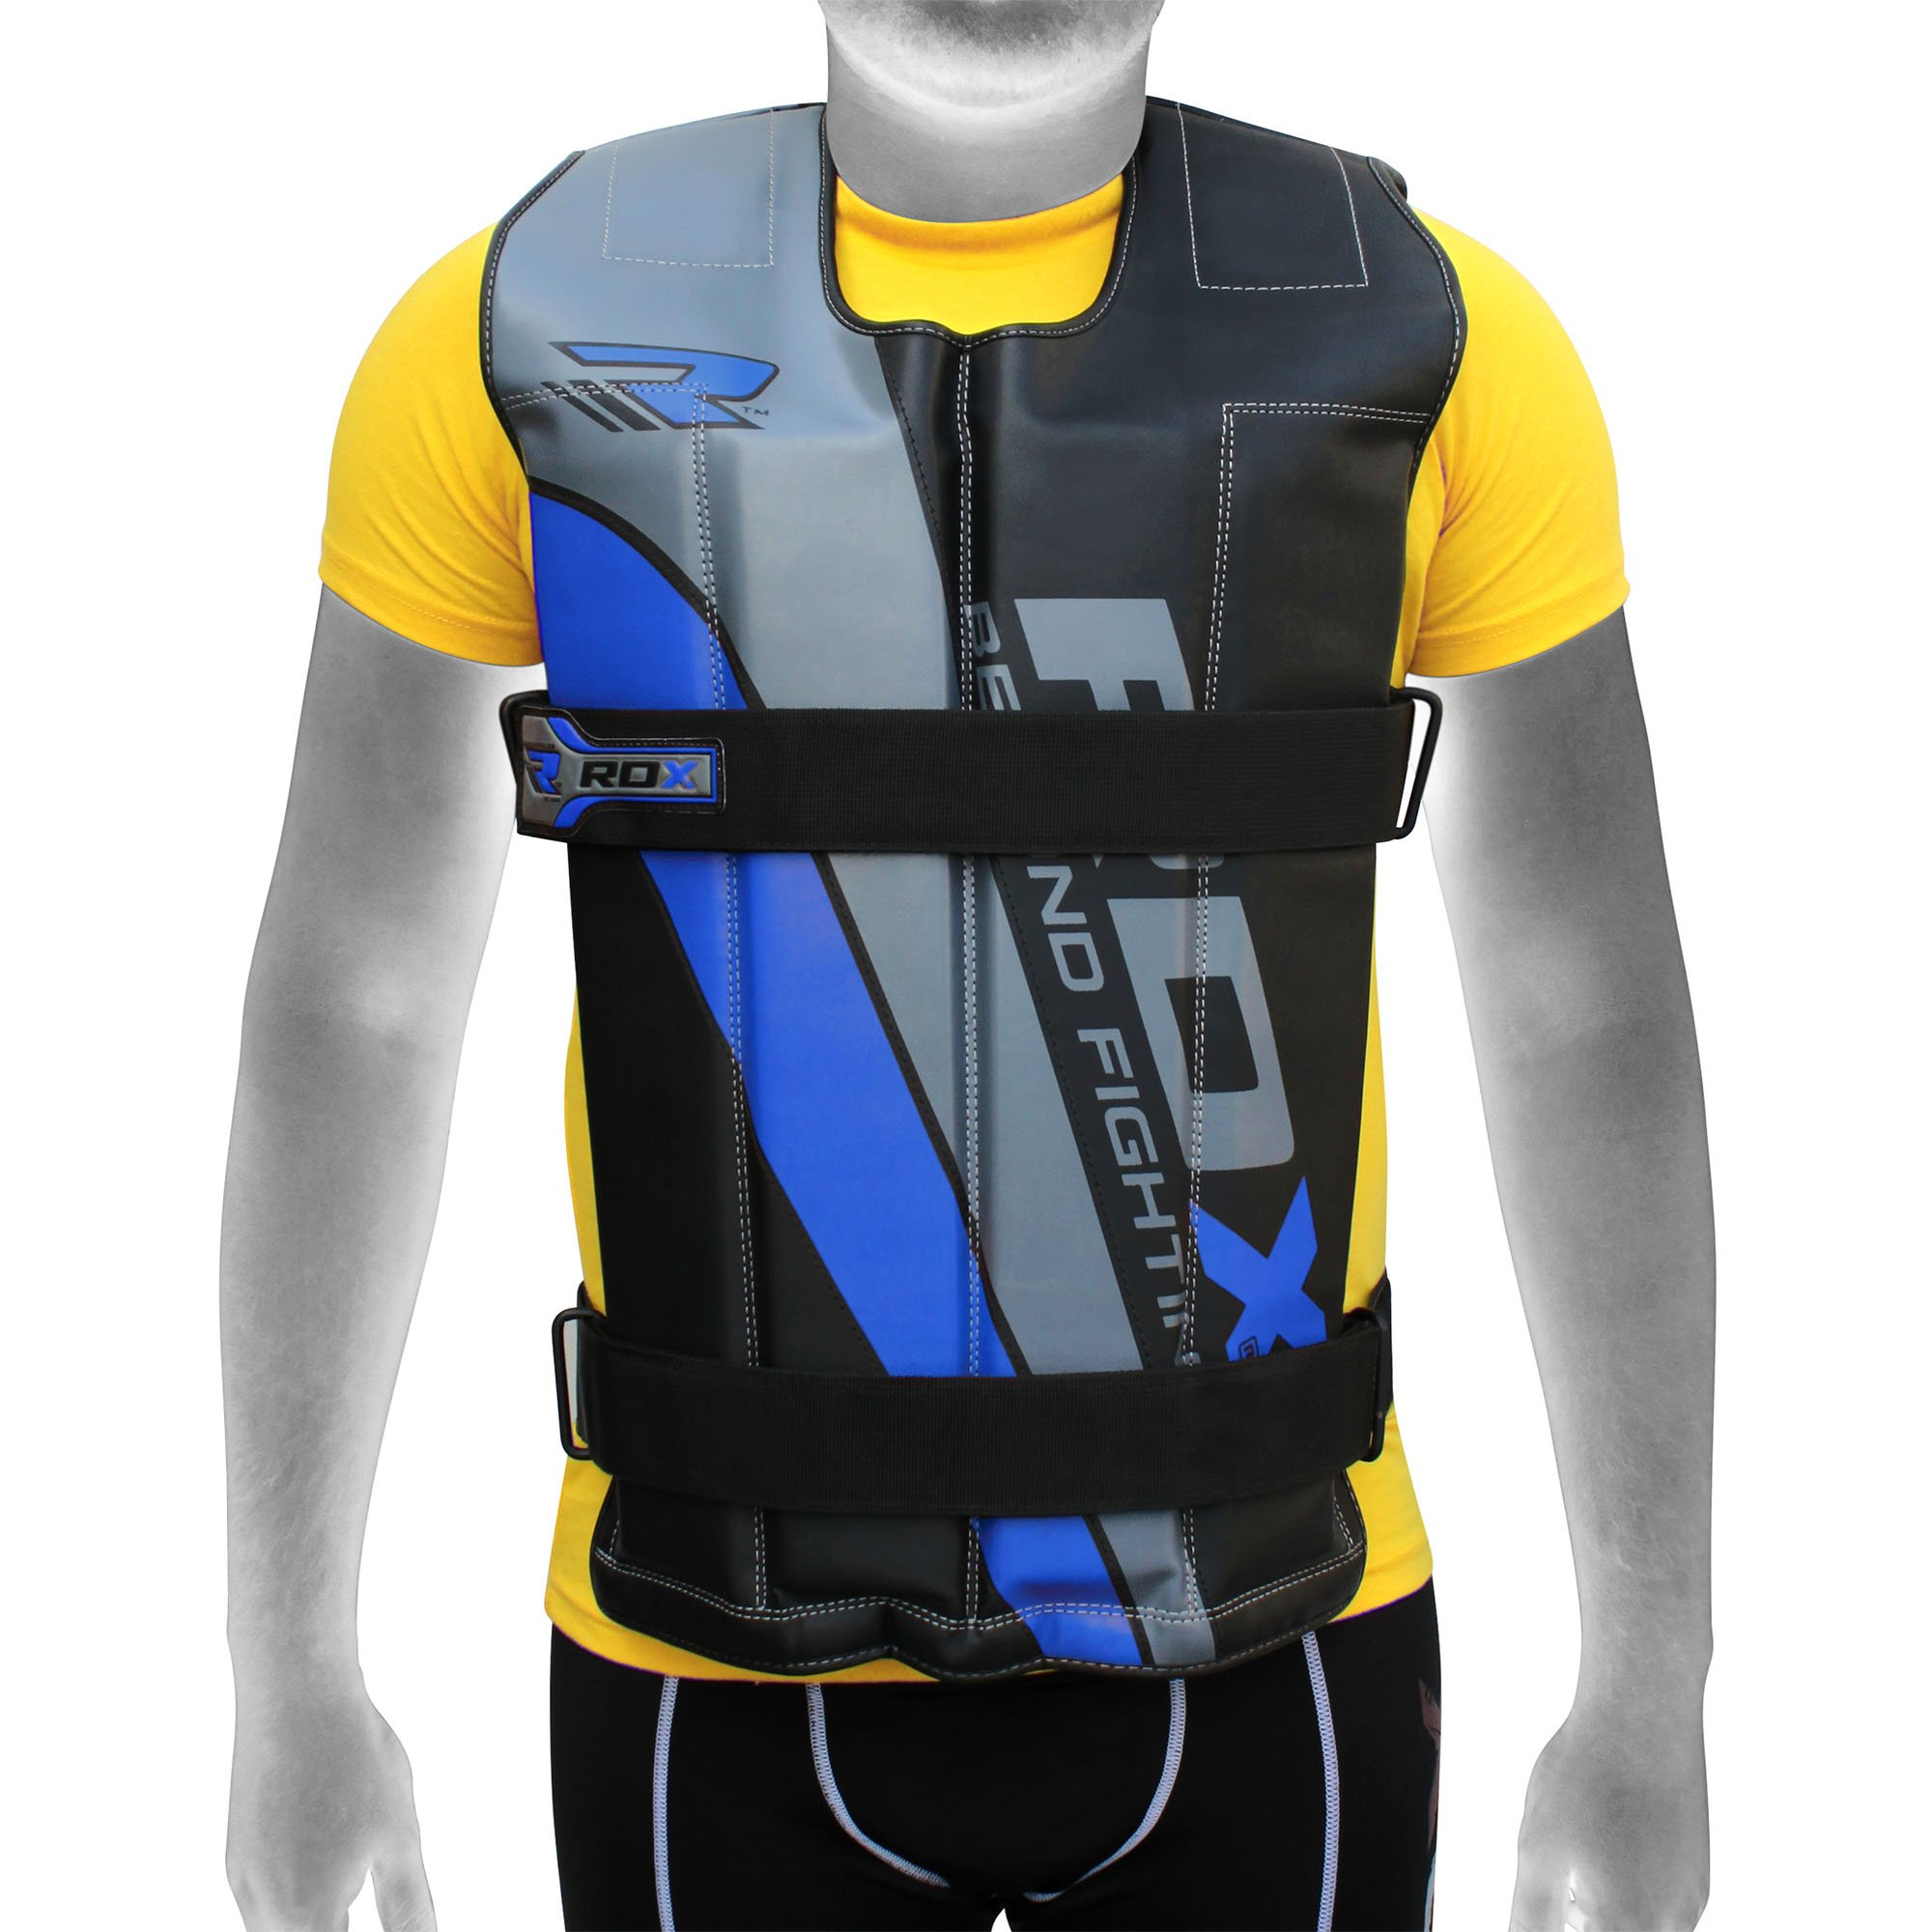 RDX ADJUSTABLE 14 TO 18 KG HEAVY WEIGHTED VEST PRO